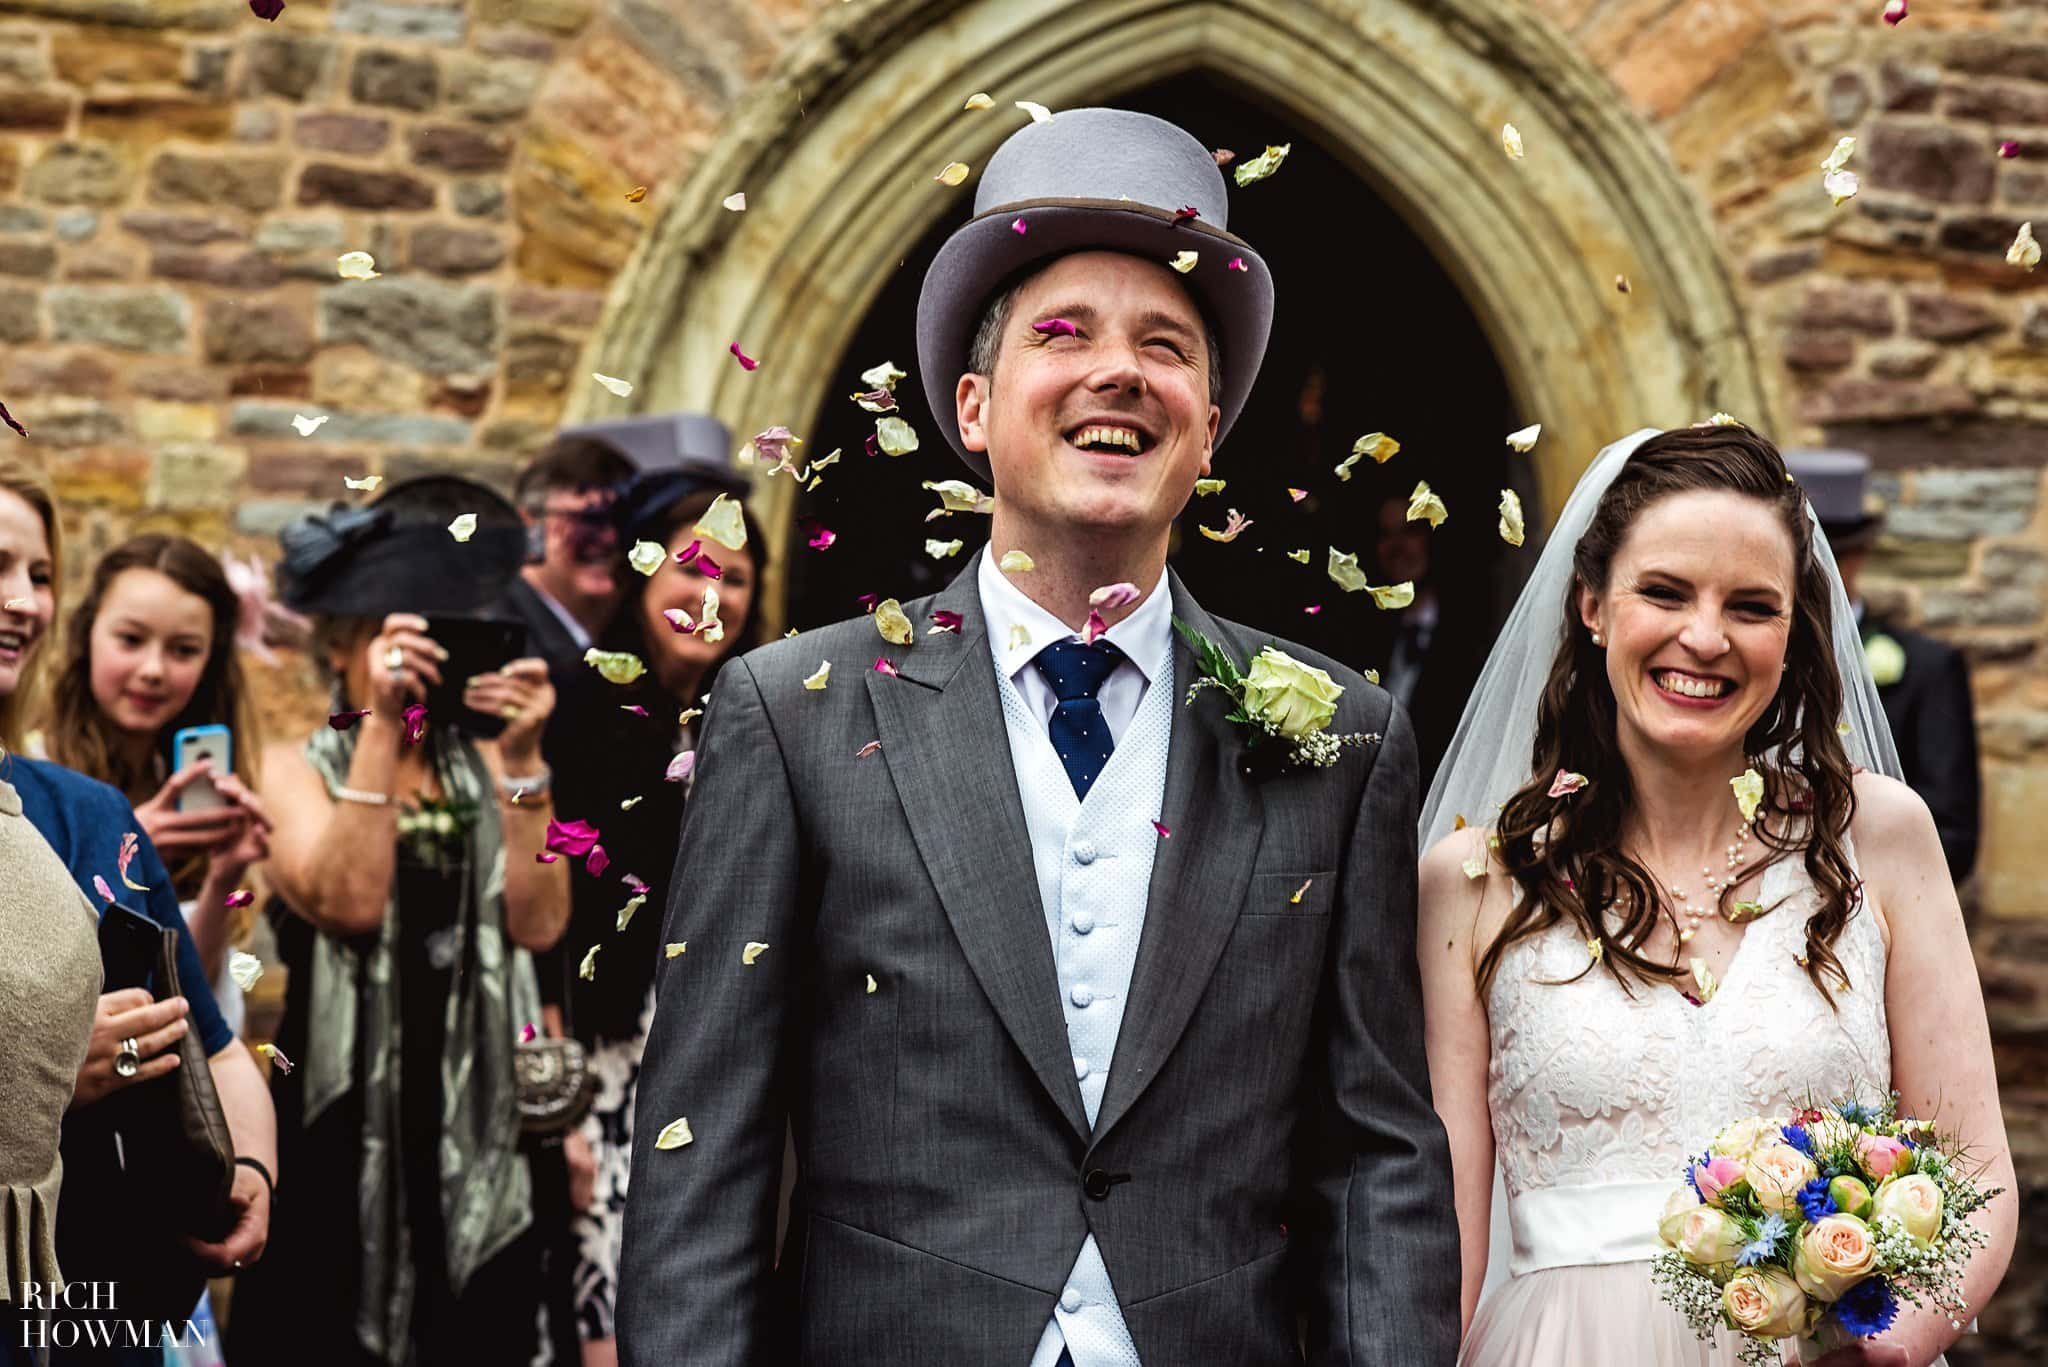 Guests throwing confetti over the bride and groom outside the church in Bristol